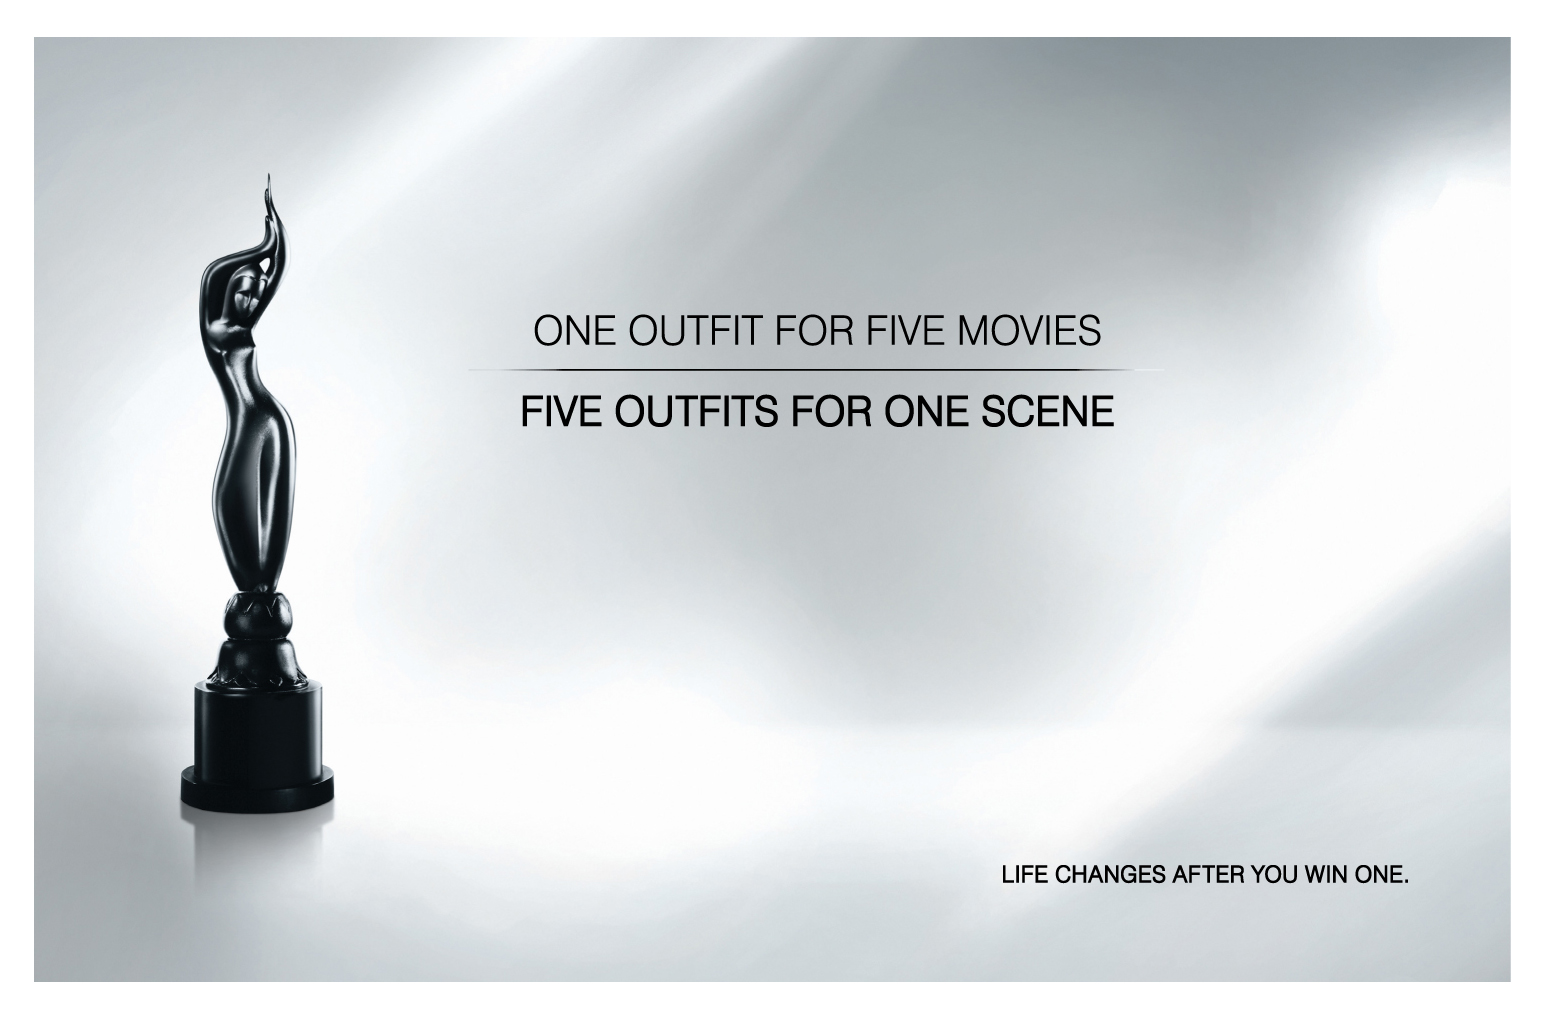 Filmfare Awards South print and outdoor campaign by Vinod Sudheer